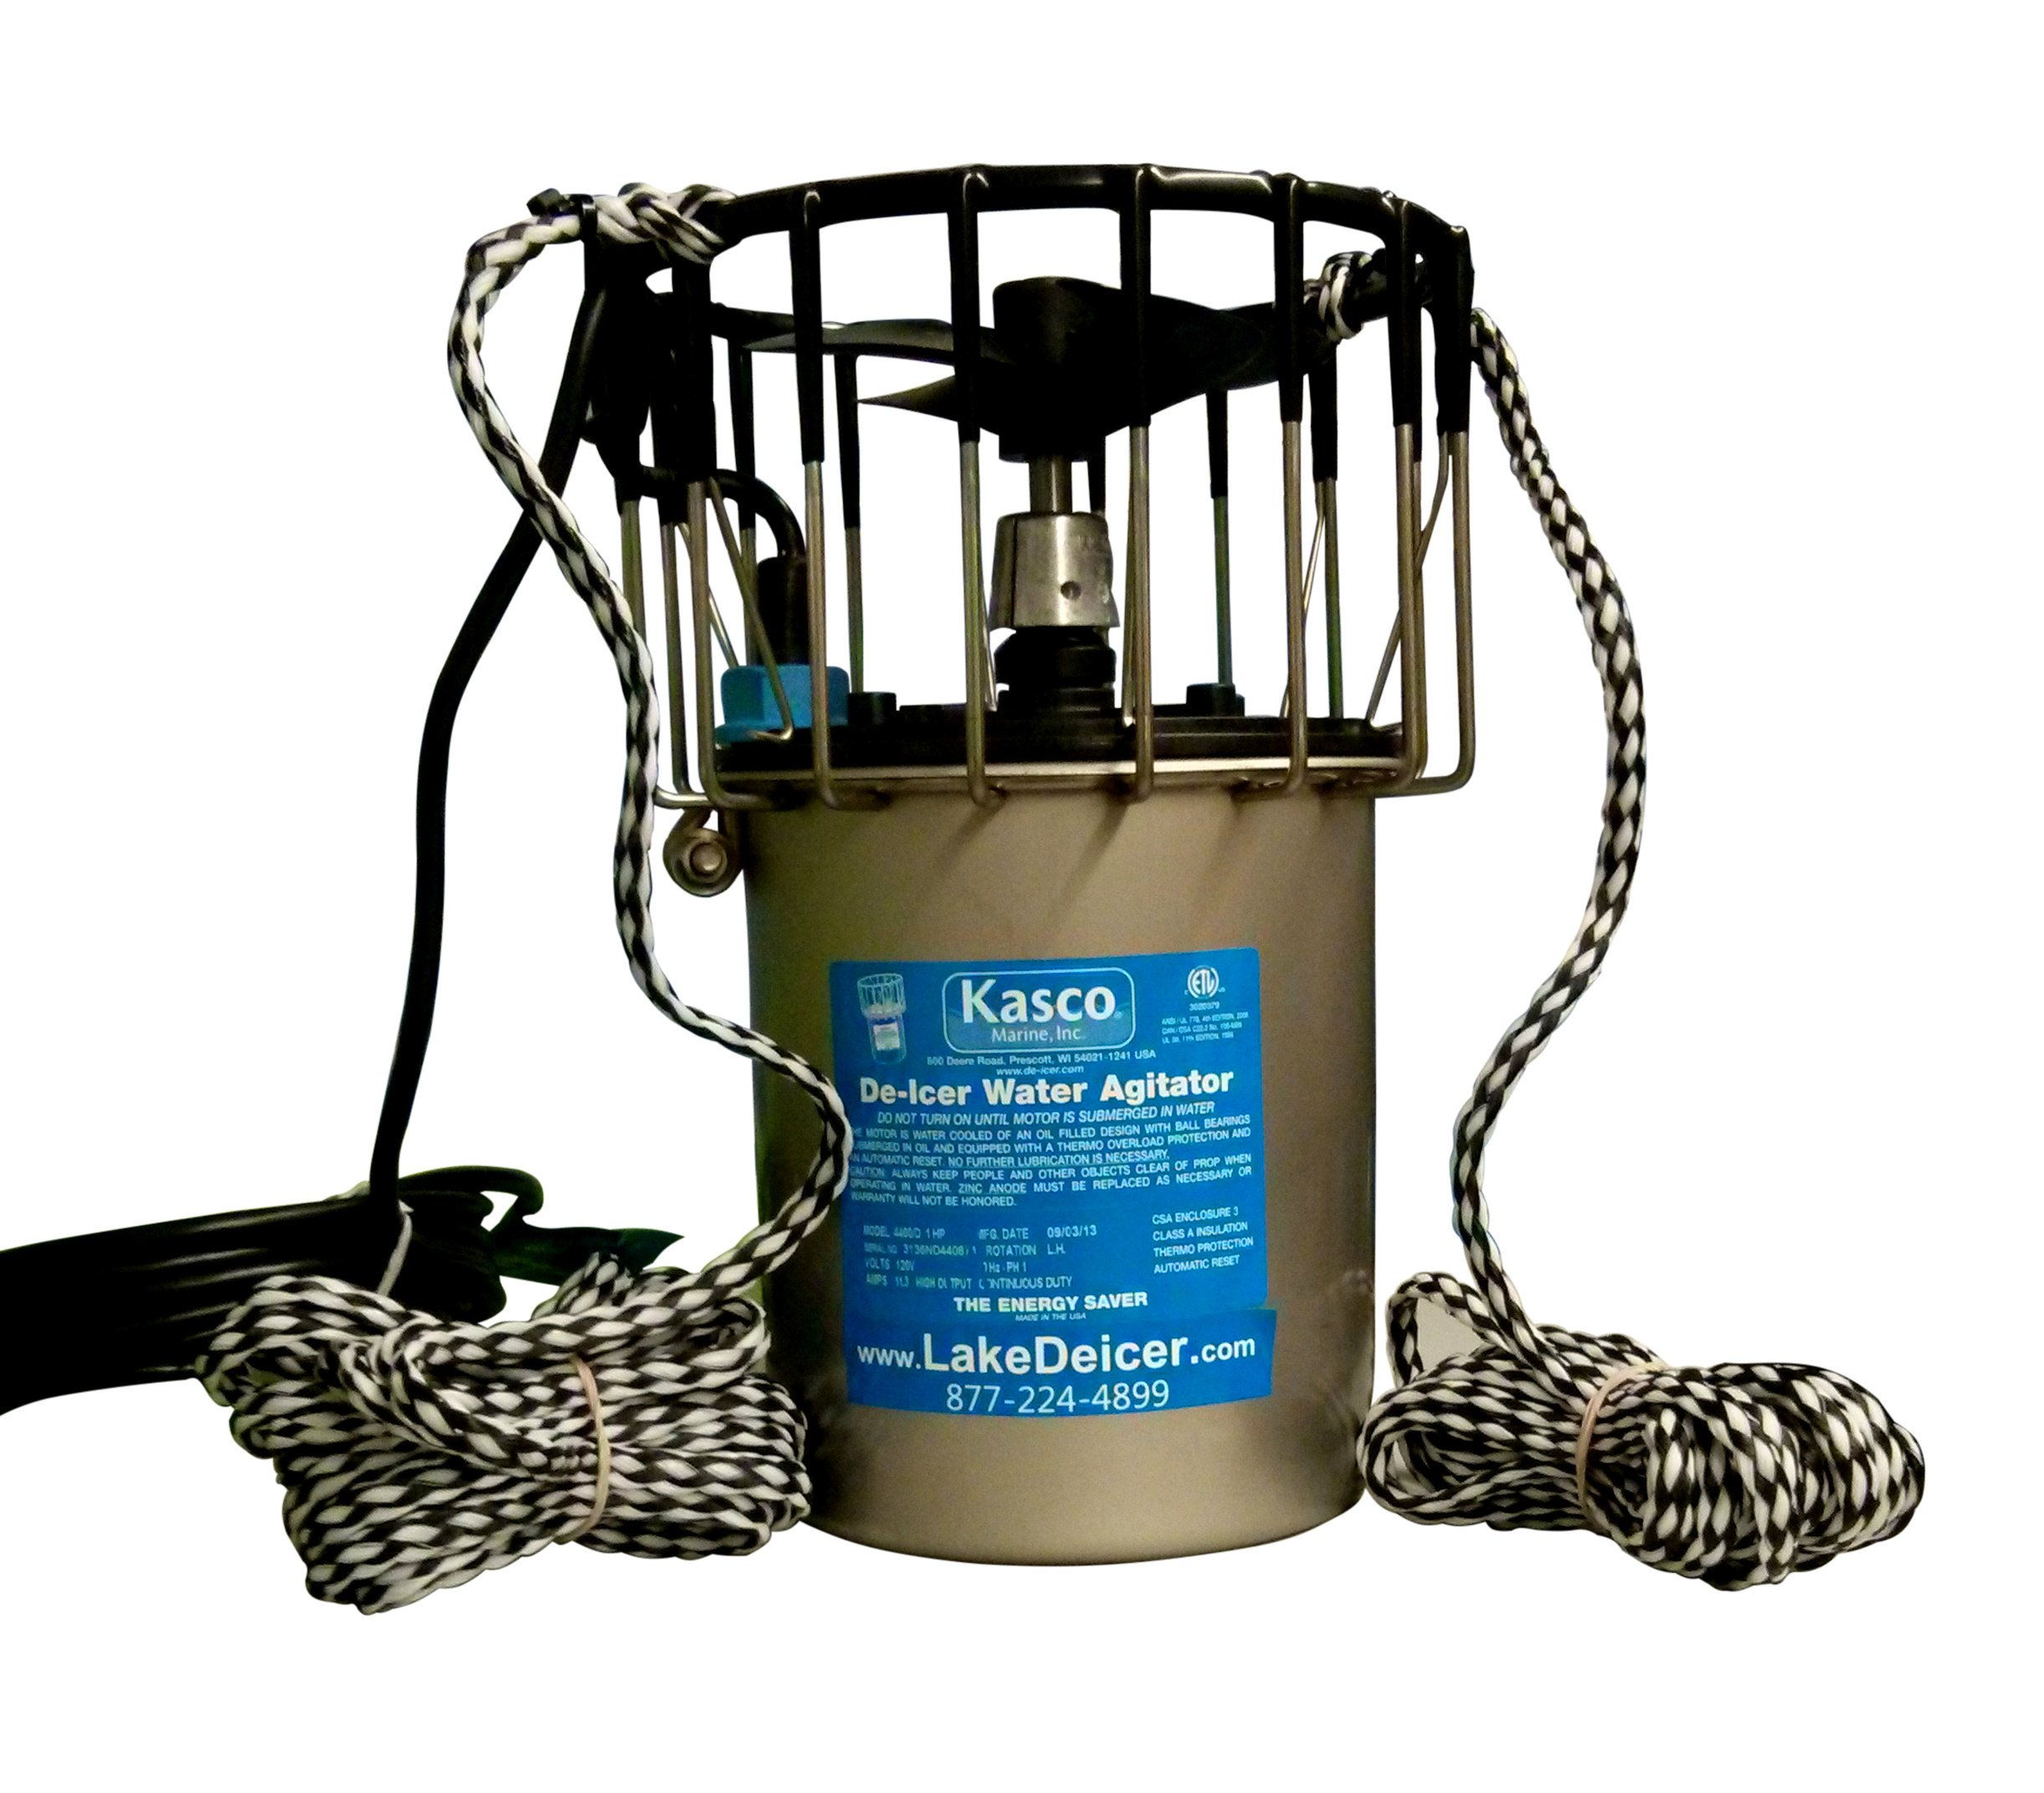 Kasco 3400D050 3400D 3/4 HP Marine De-Icer - 120V Single Phase, 60Hz, 50' Cord